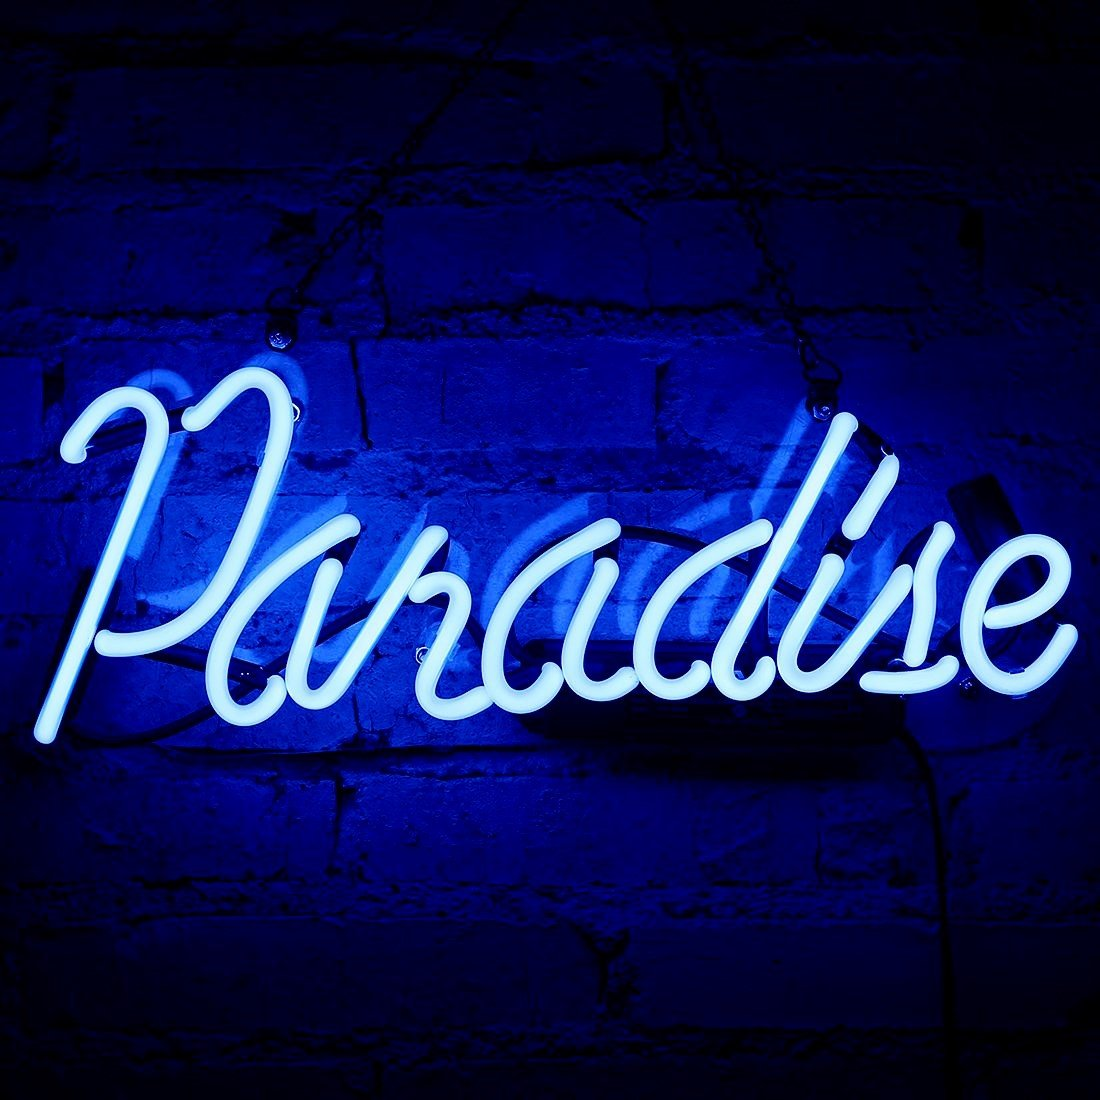 Neon Light Sign Paradise Neon Bar Sign Handmade Glass Neon Sign for Gift Pub Recreation Room Party Cafe Store Bedroom Wall Decor Lamp 14'' x 6'' Blue